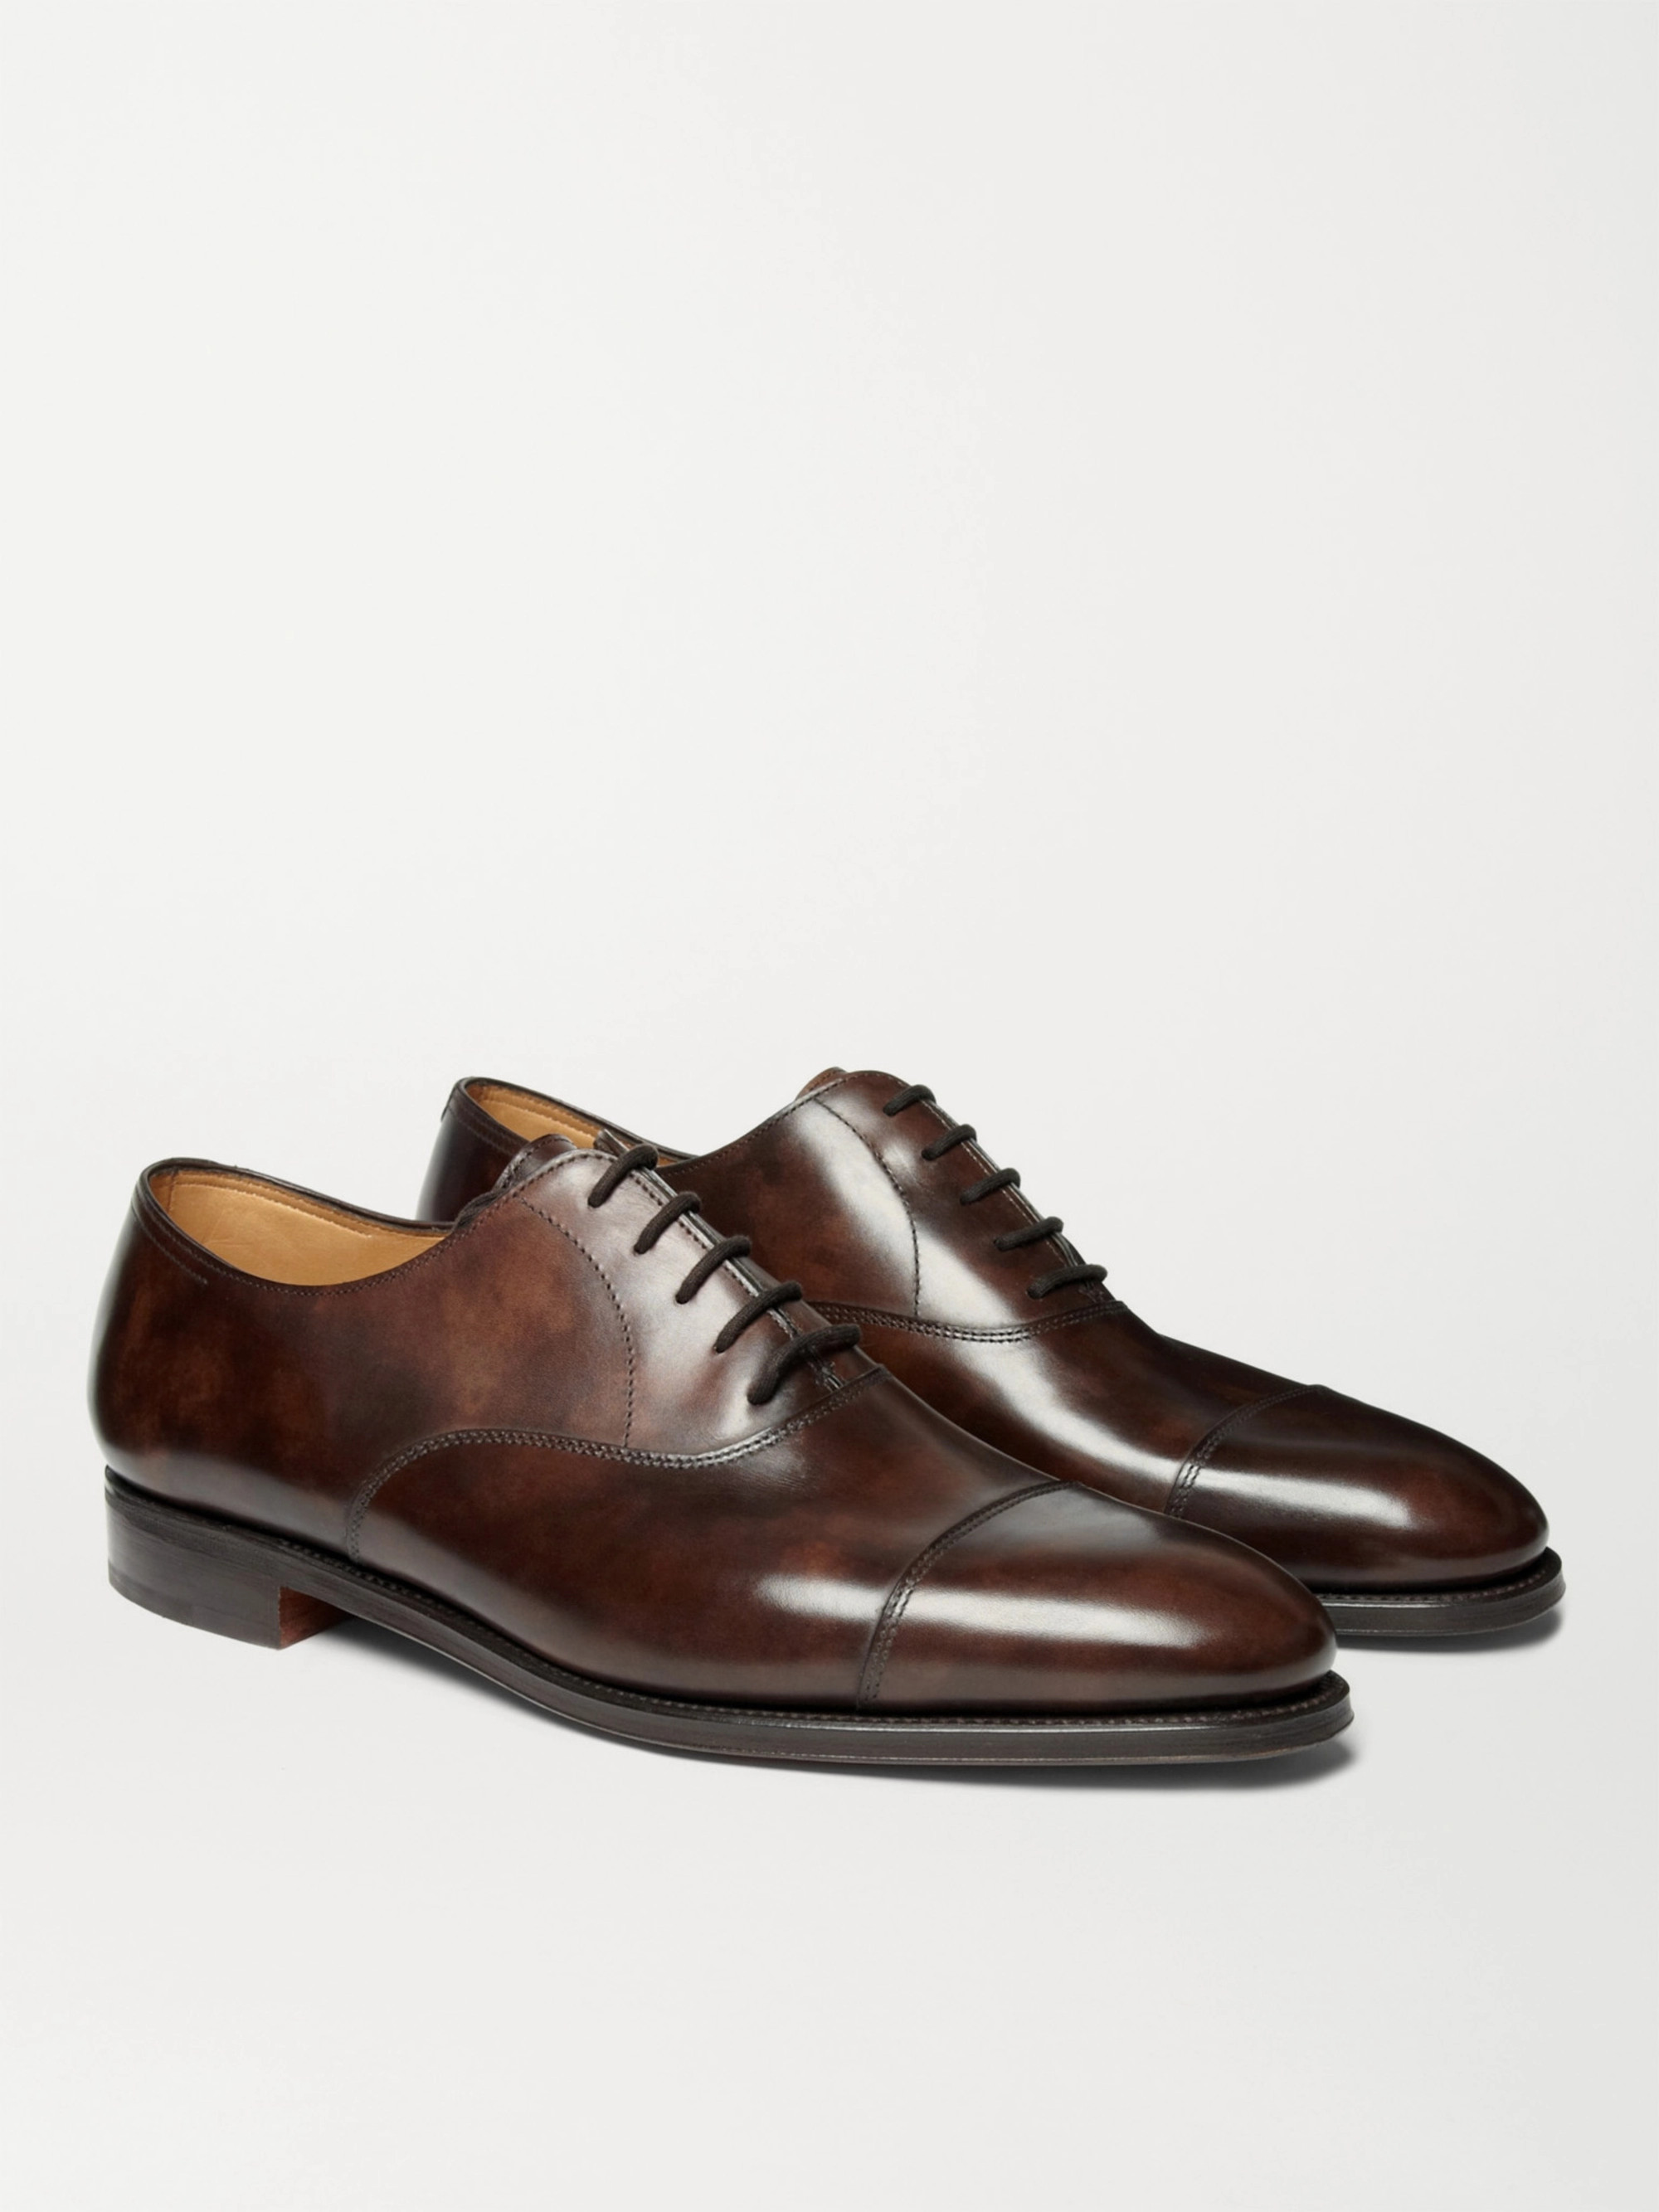 Leather Shoes City Burnished Oxford Ii qUpzMVS